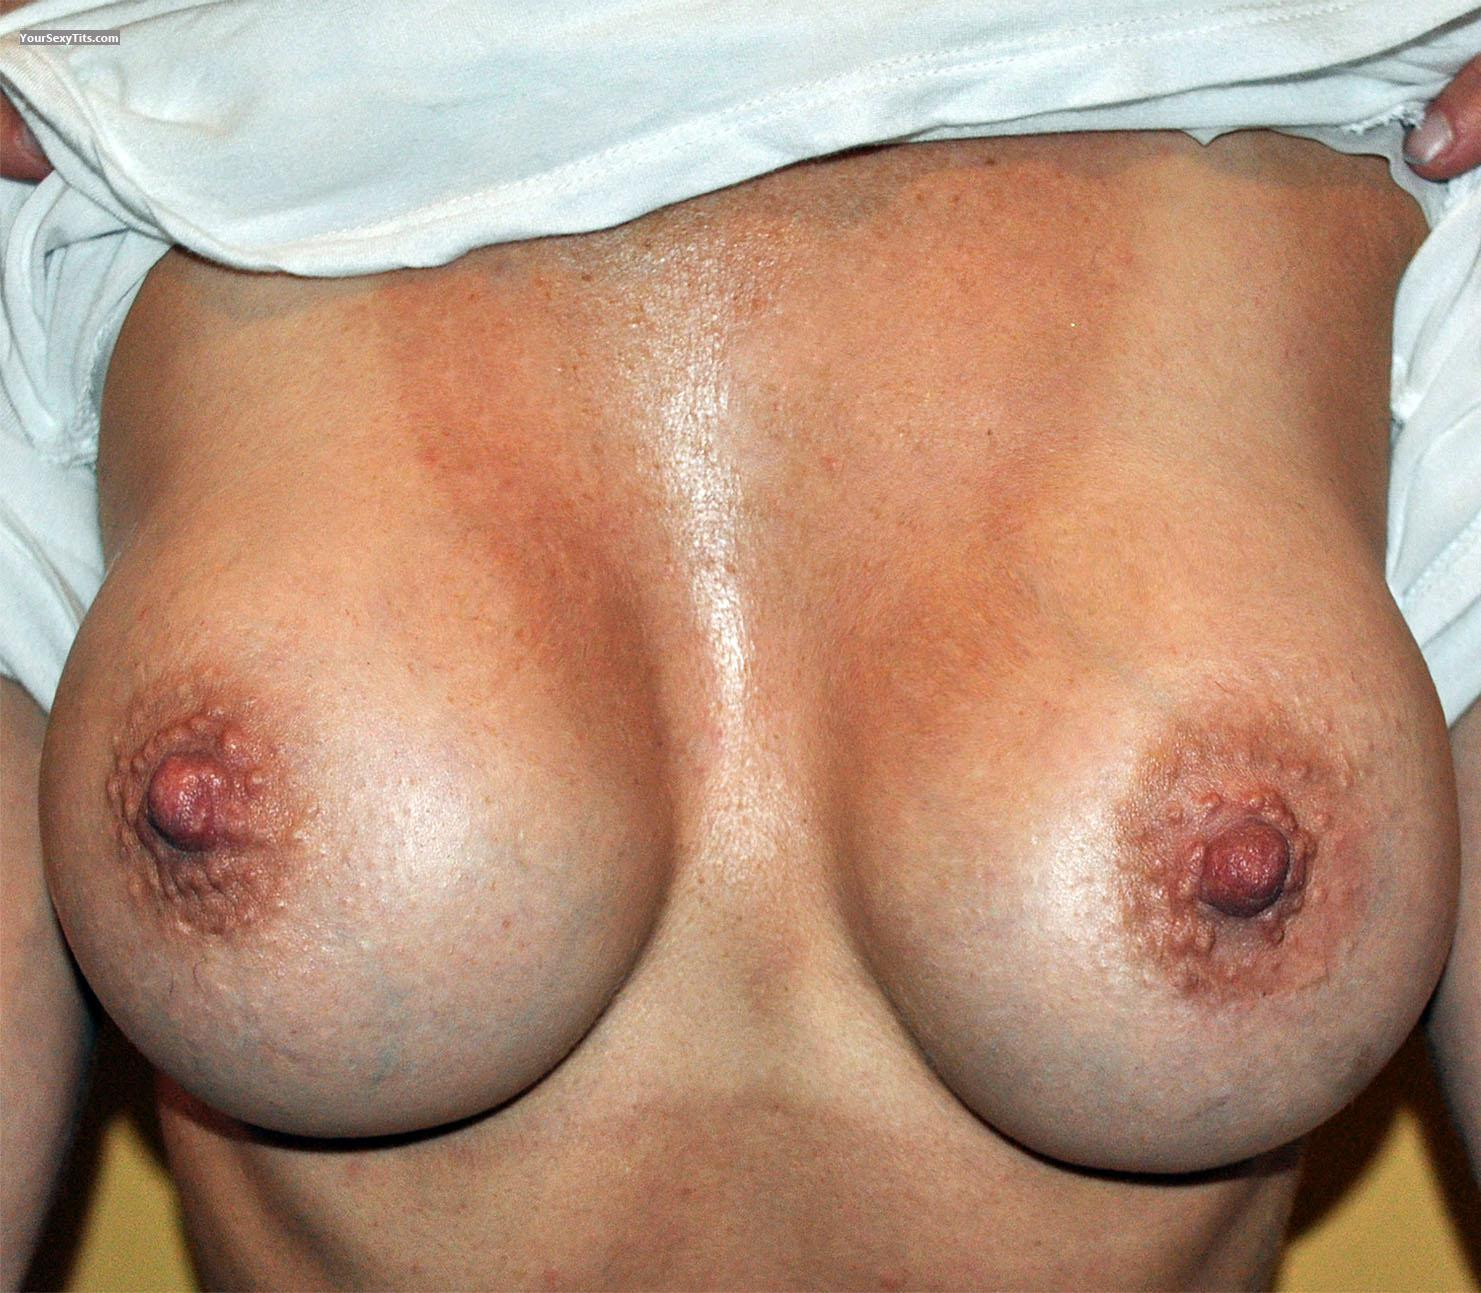 Medium Tits Of My Wife Sexy4me